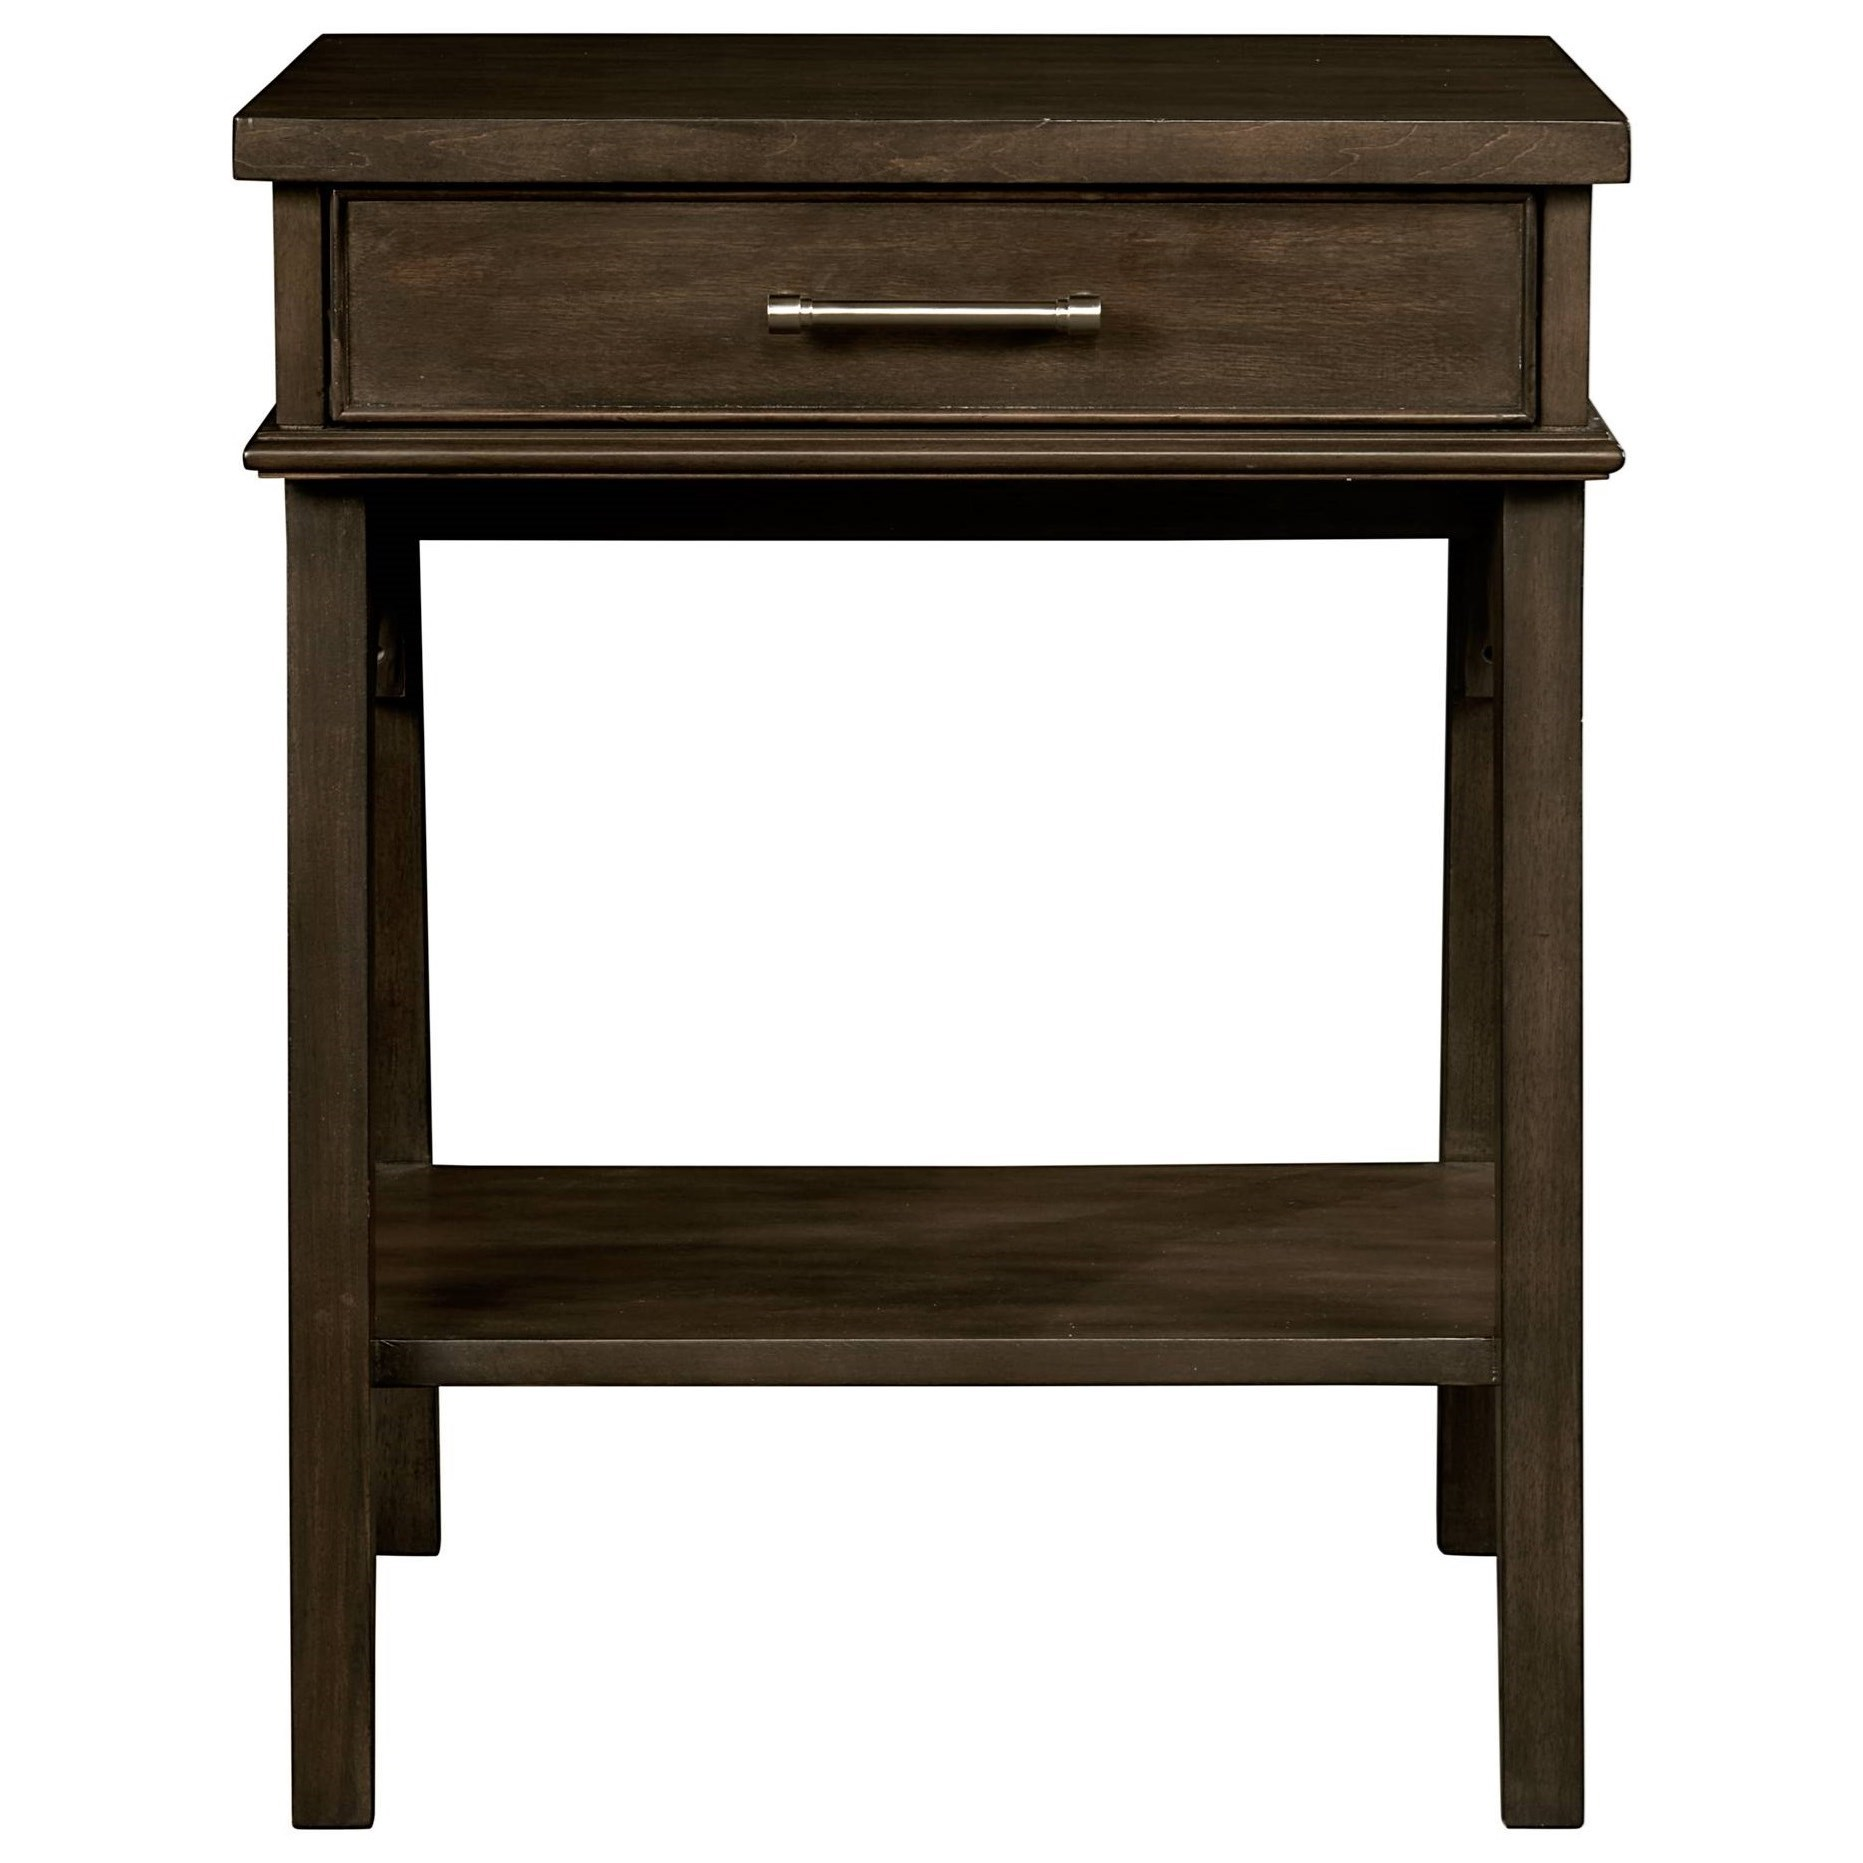 Stone & Leigh Furniture Chelsea Square Bedside Table - Item Number: 584-13-80